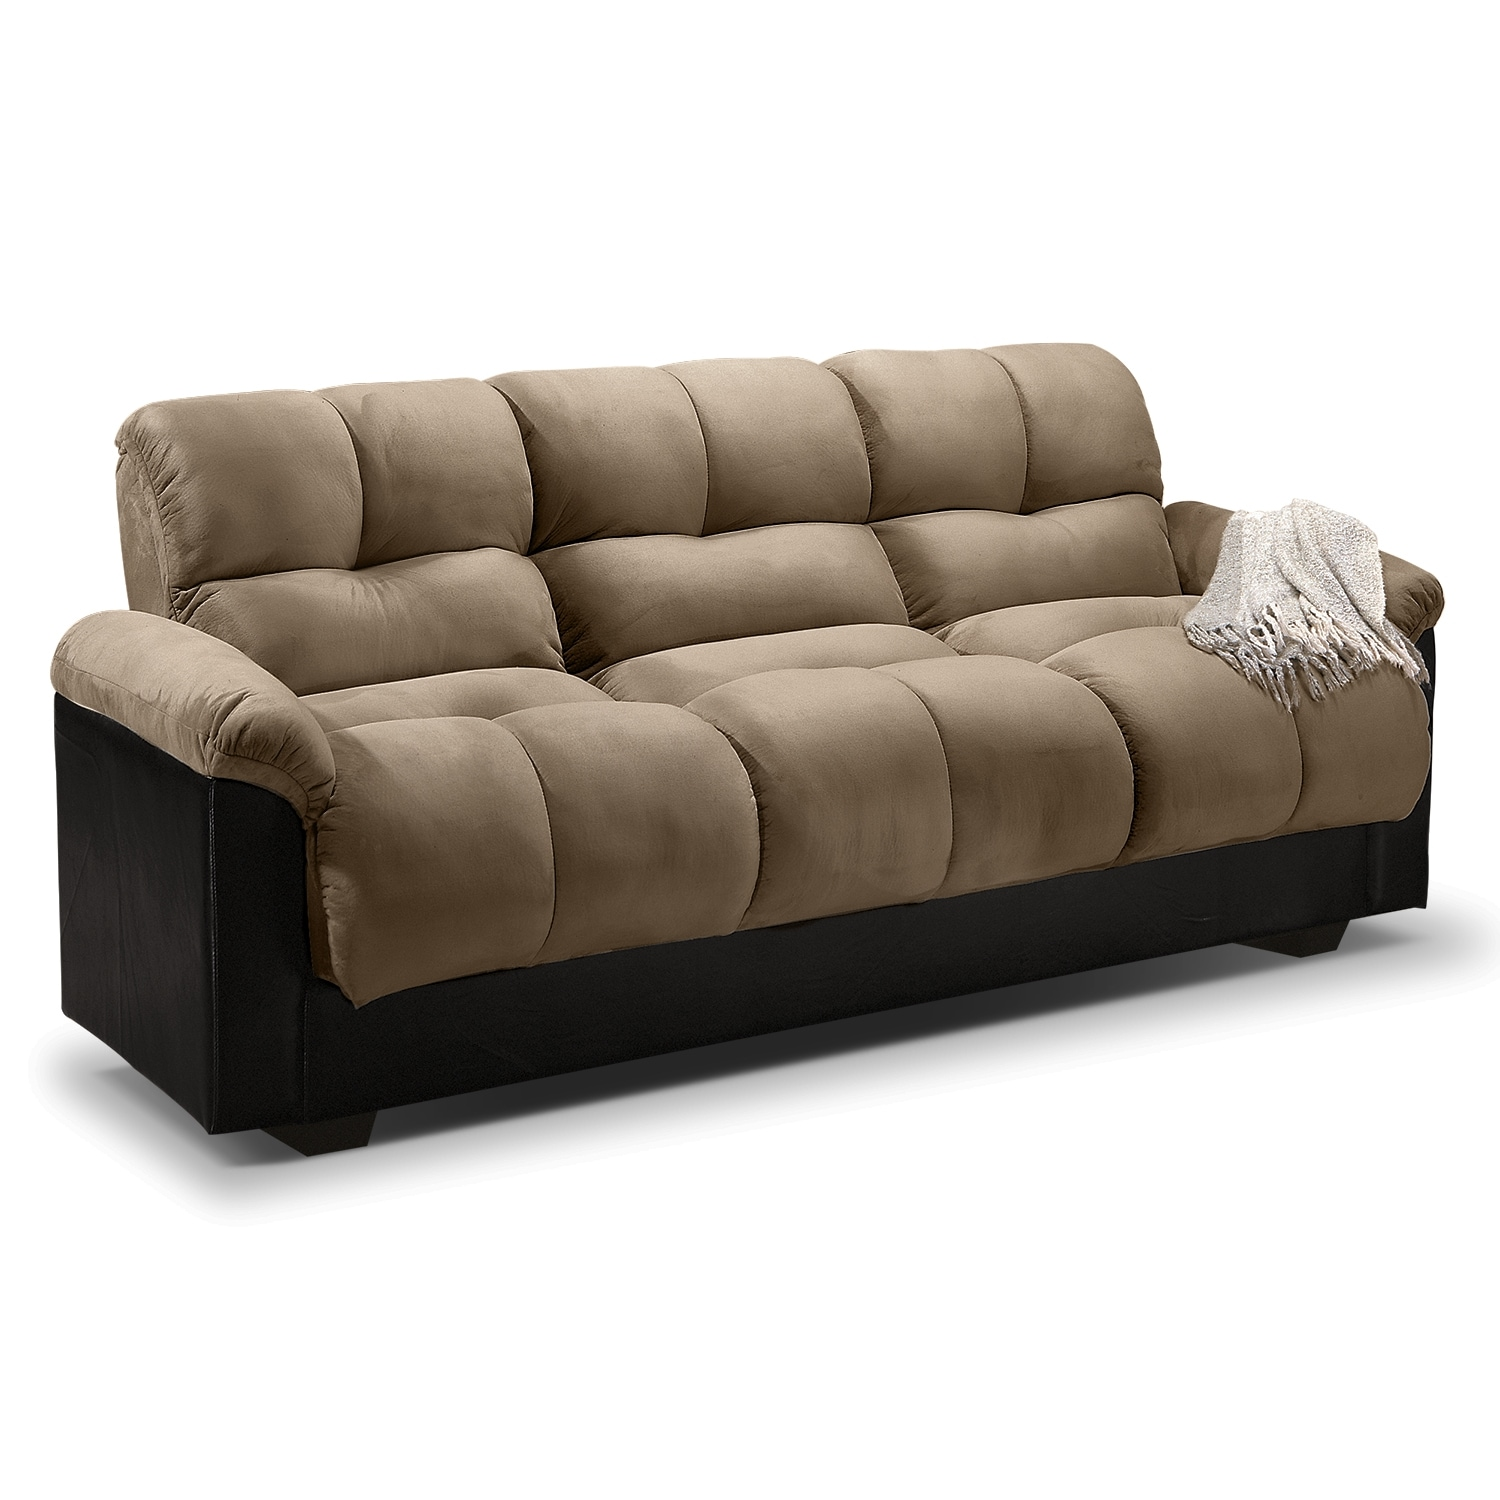 Ara Futon Sofa Bed With Storage Value City Furniture